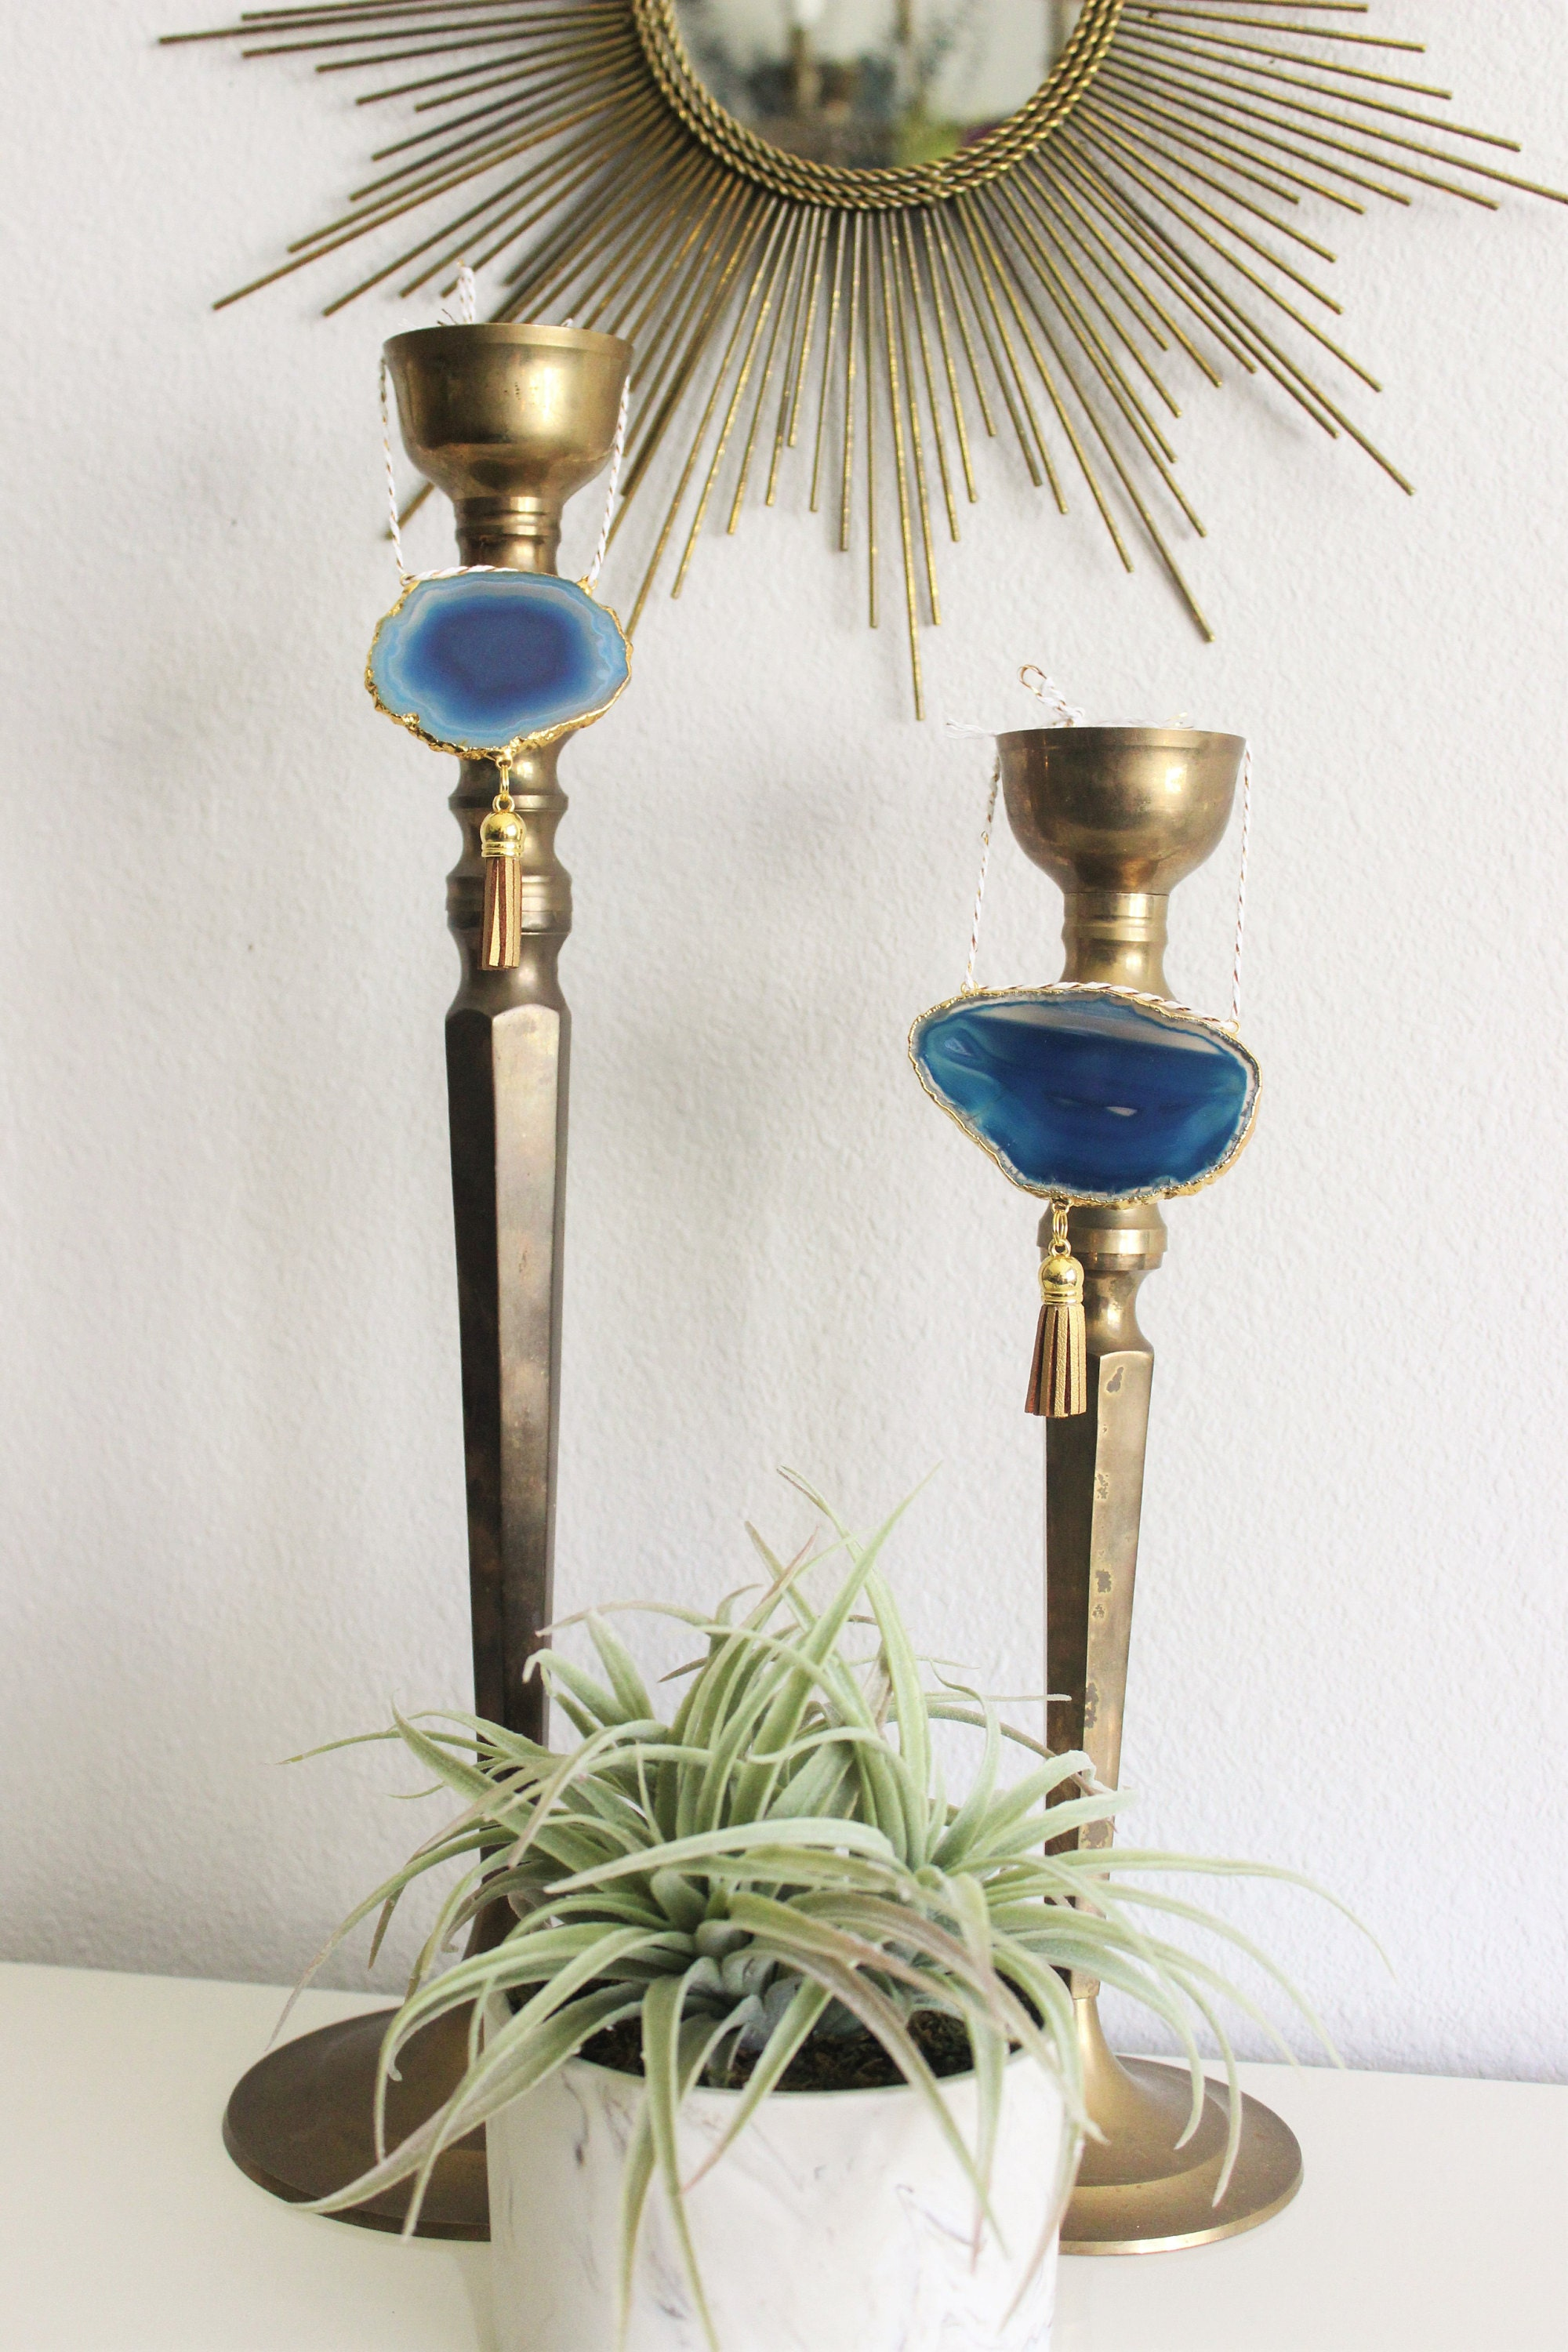 Blue Boho Agate Ornaments shown on Vintage Brass Candle Holders